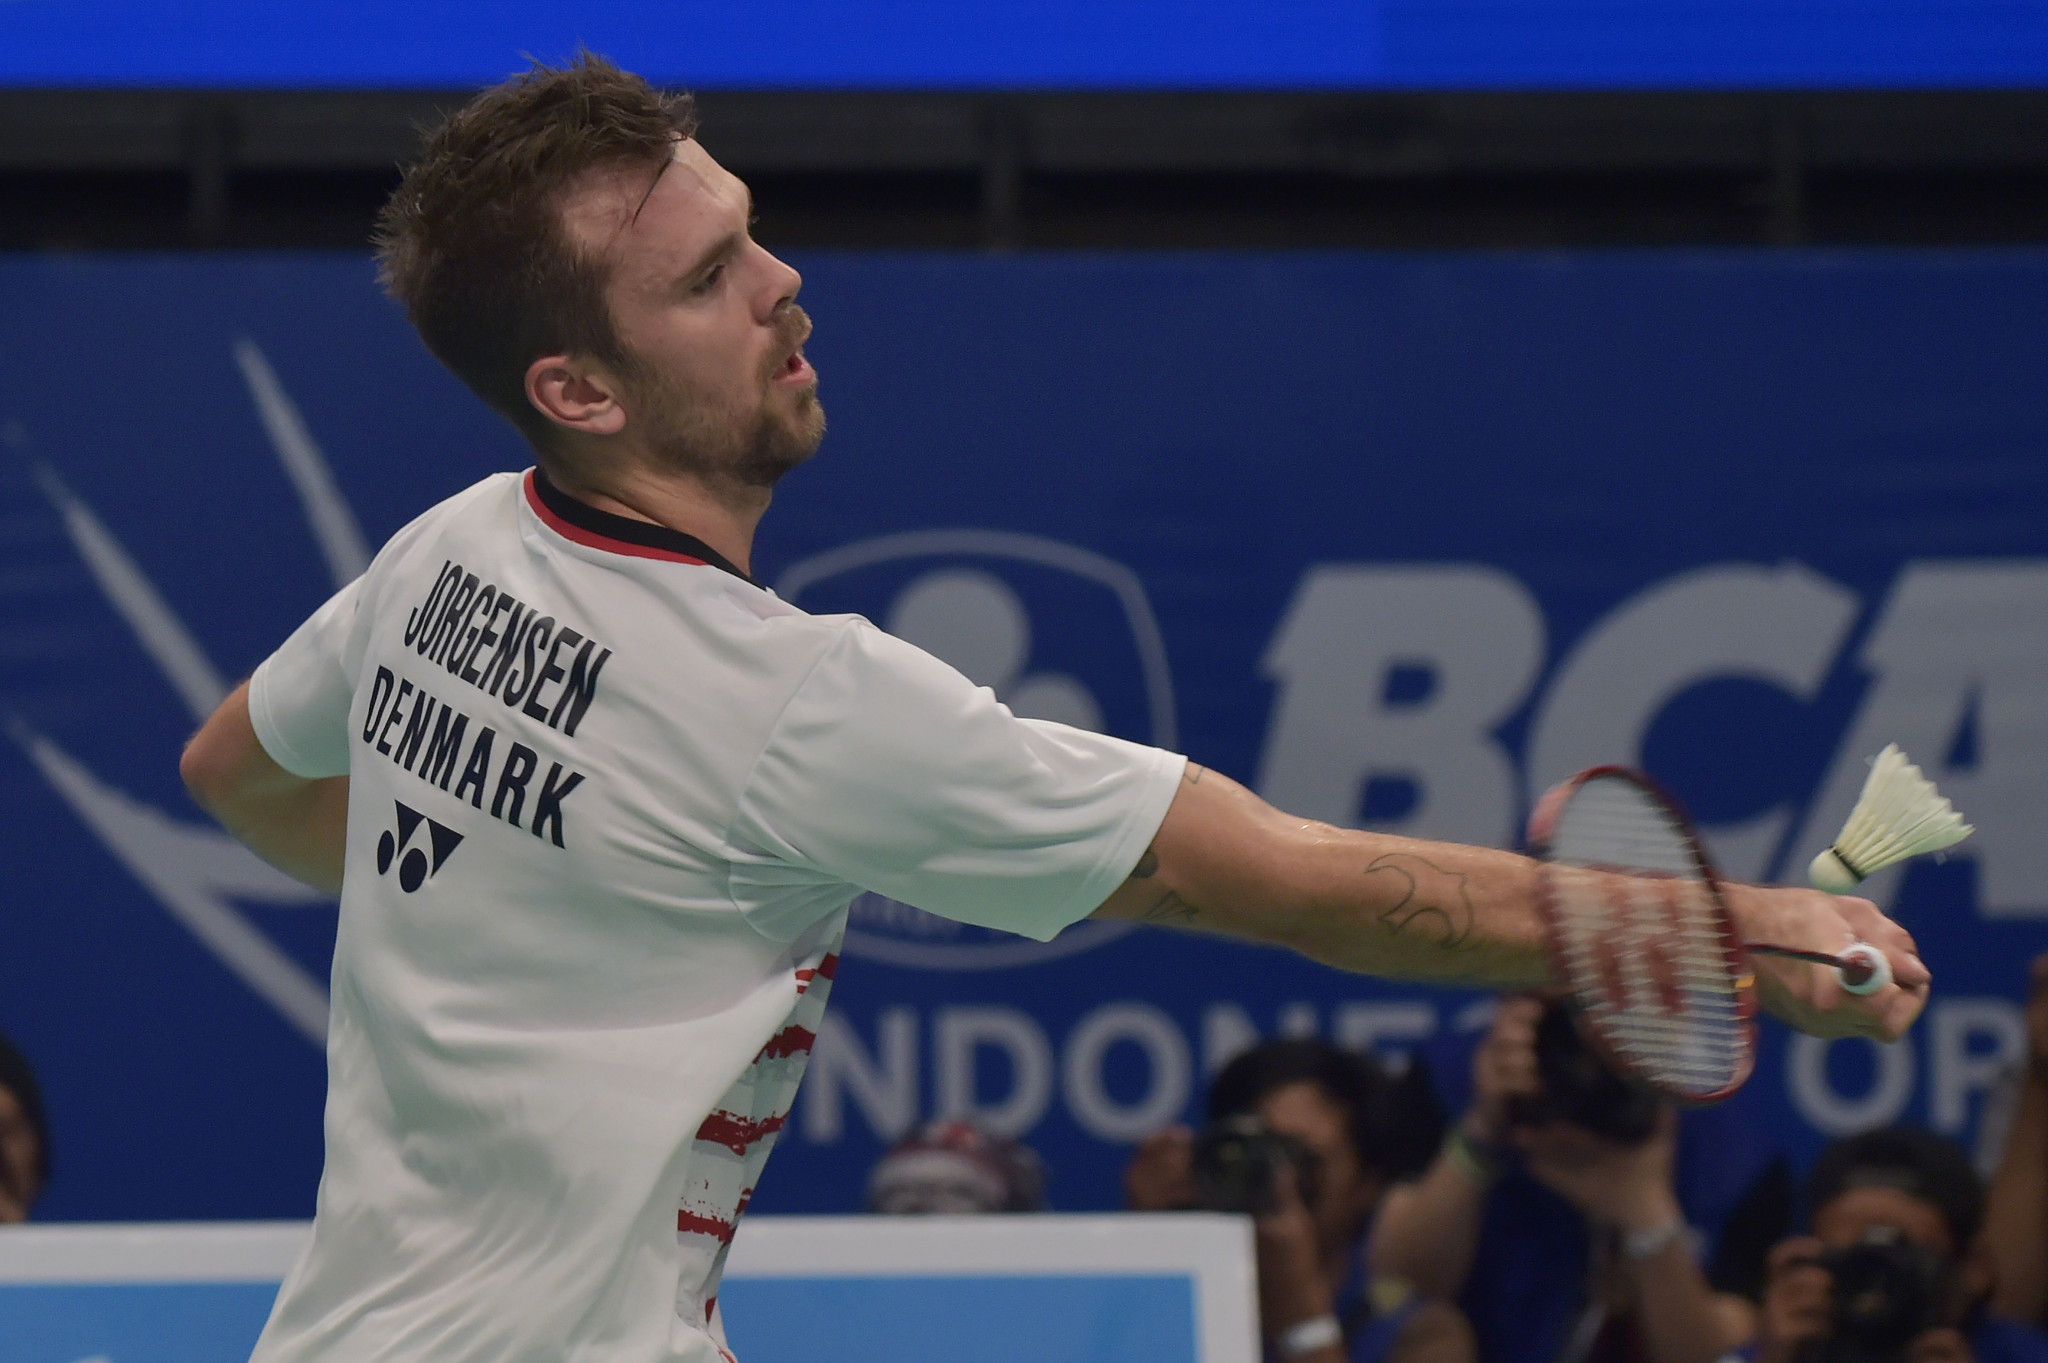 Denmark enjoy comfortable start to title defences at European Team Badminton Championships